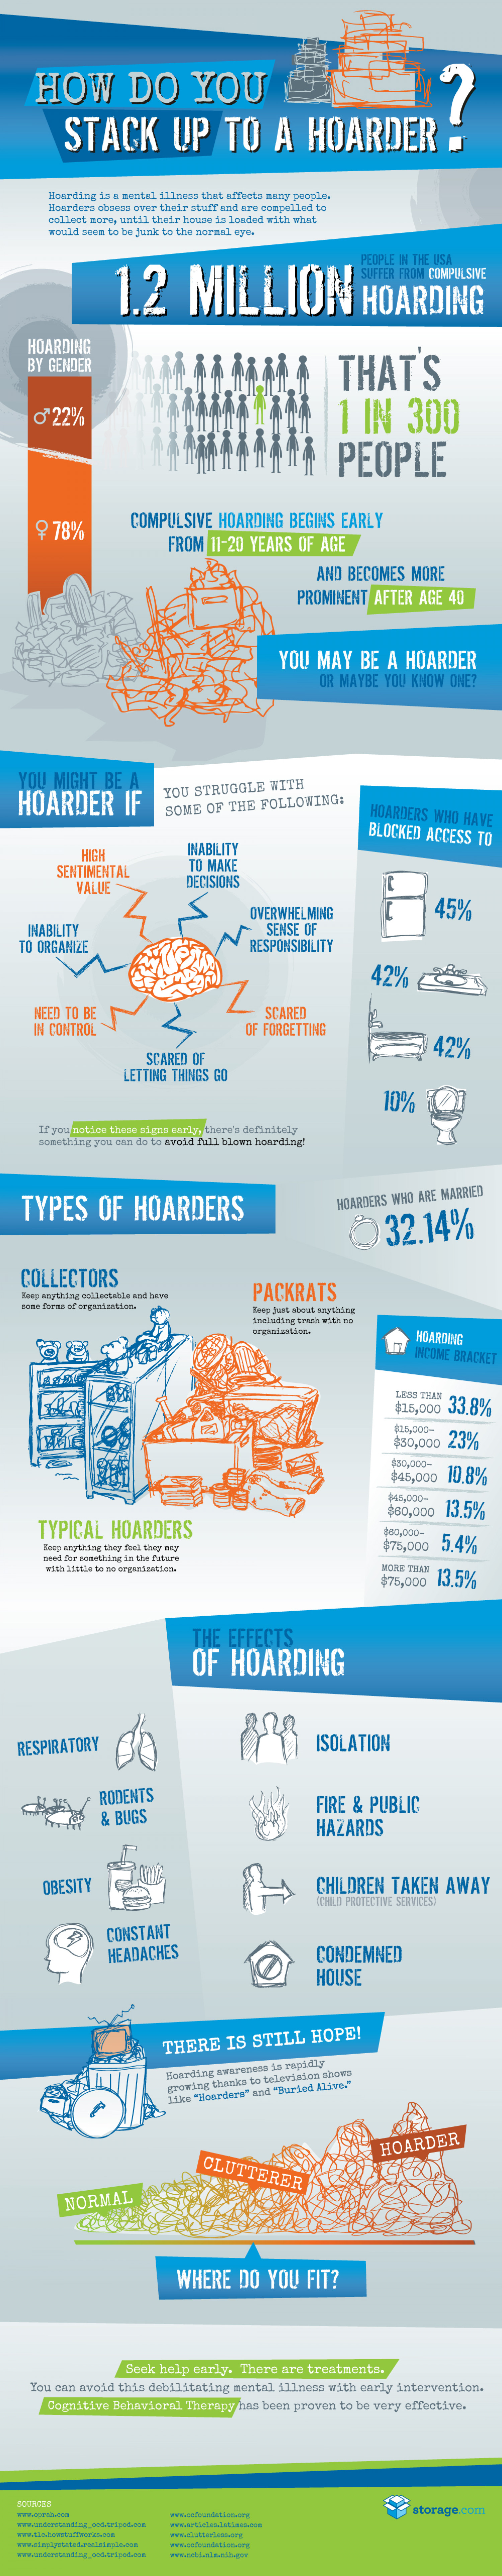 How Do You Stack Up to a Hoarder? Infographic